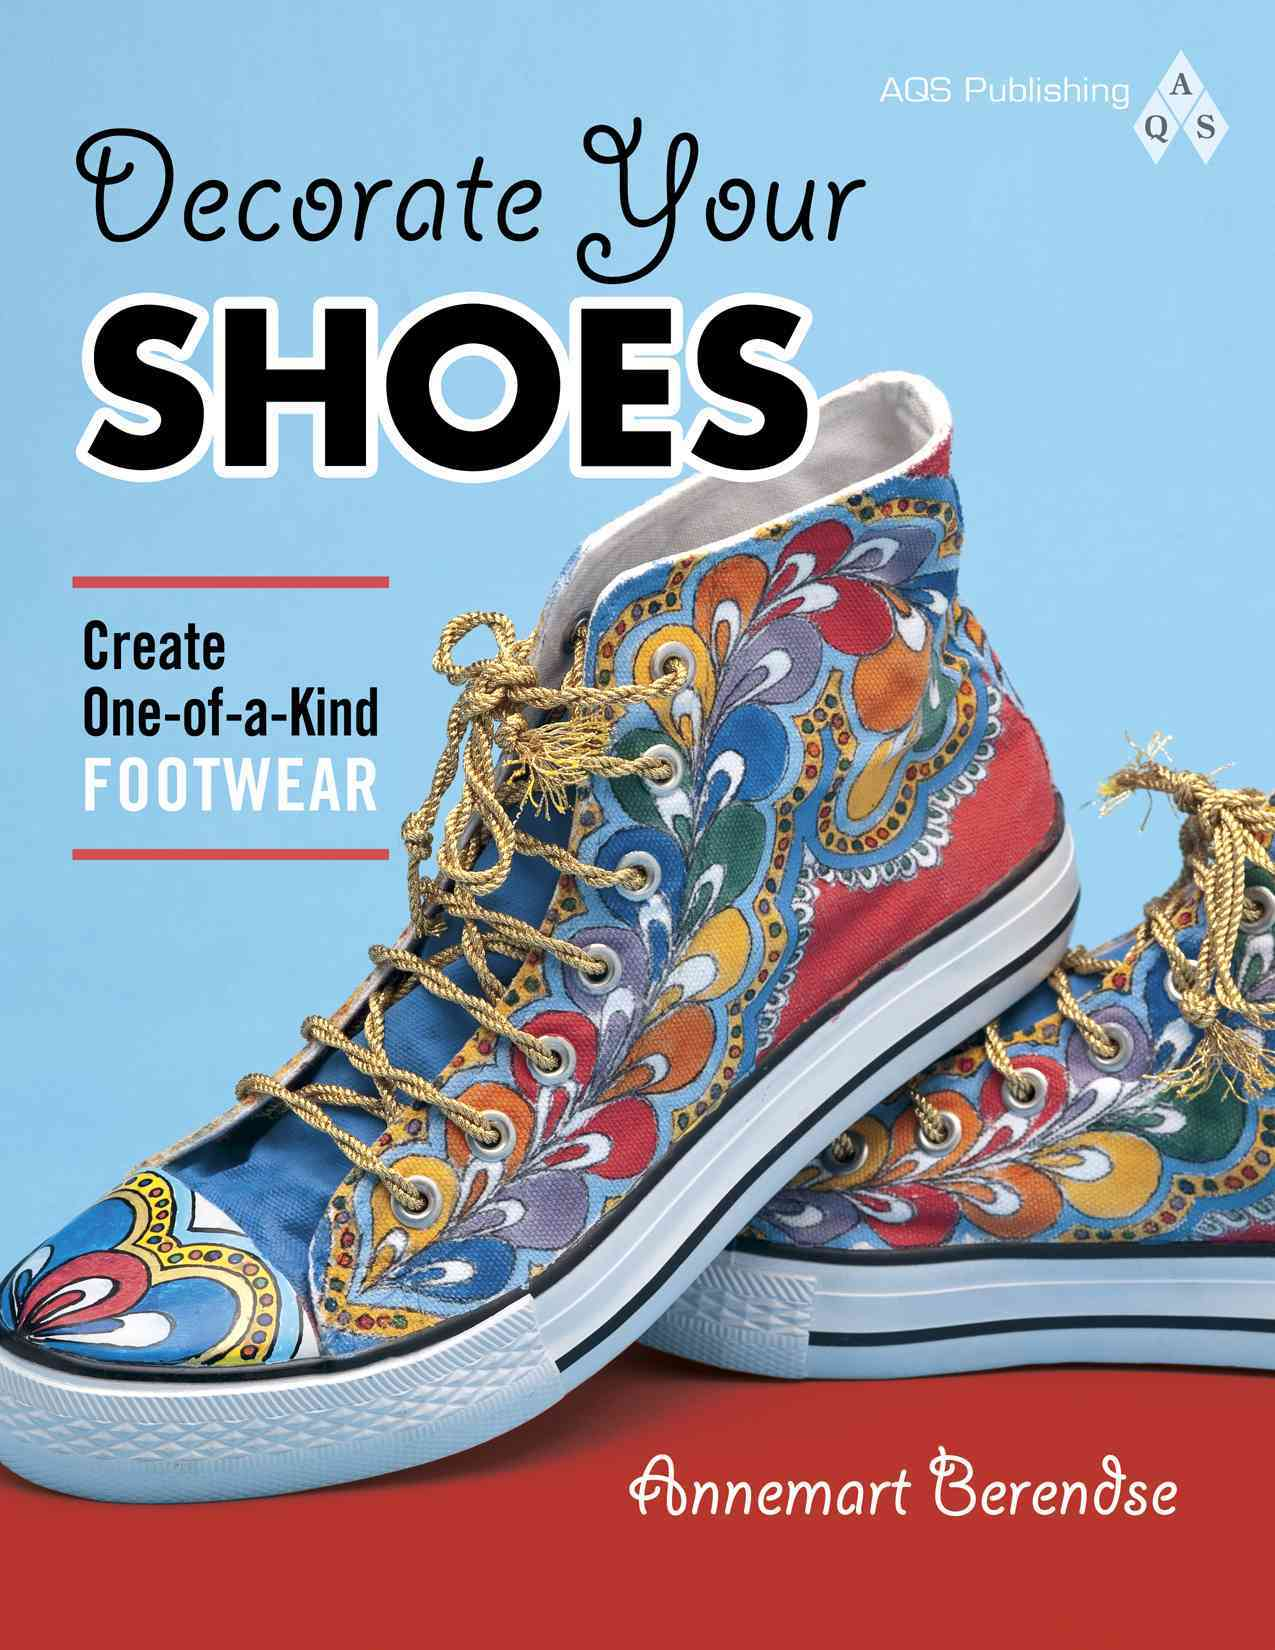 Decorate Your Shoes!: Create One-of-a-Kind Footwear (Paperback)